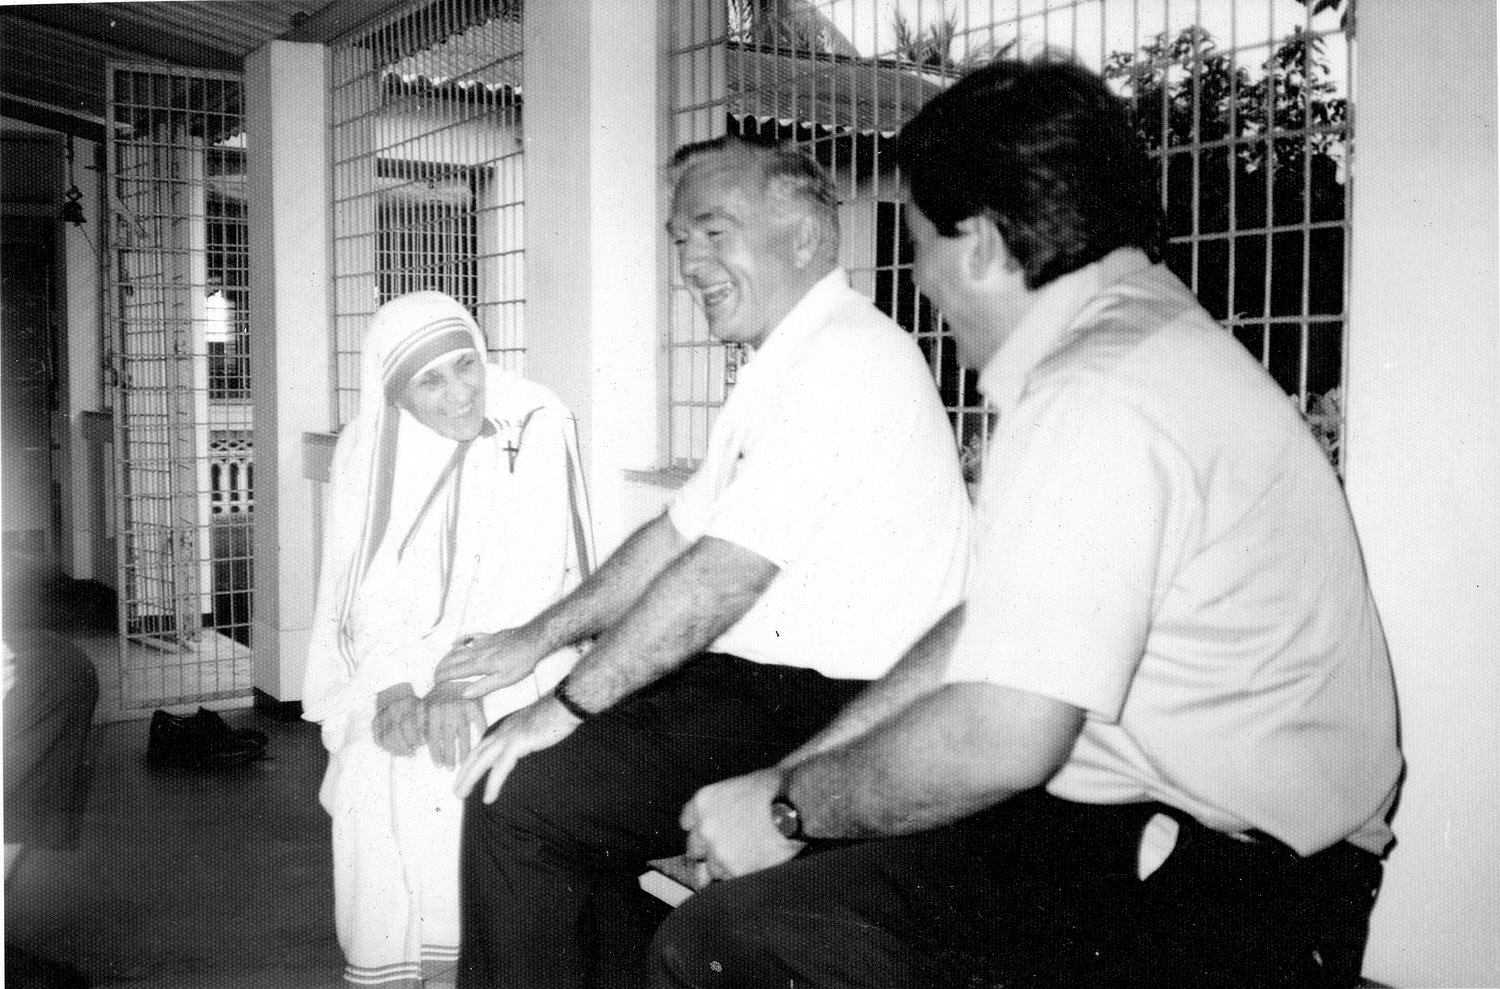 Bishop Mulvee laughs with Mother Teresa in Calcutta during a Catholic Relief Services visit in 1989.